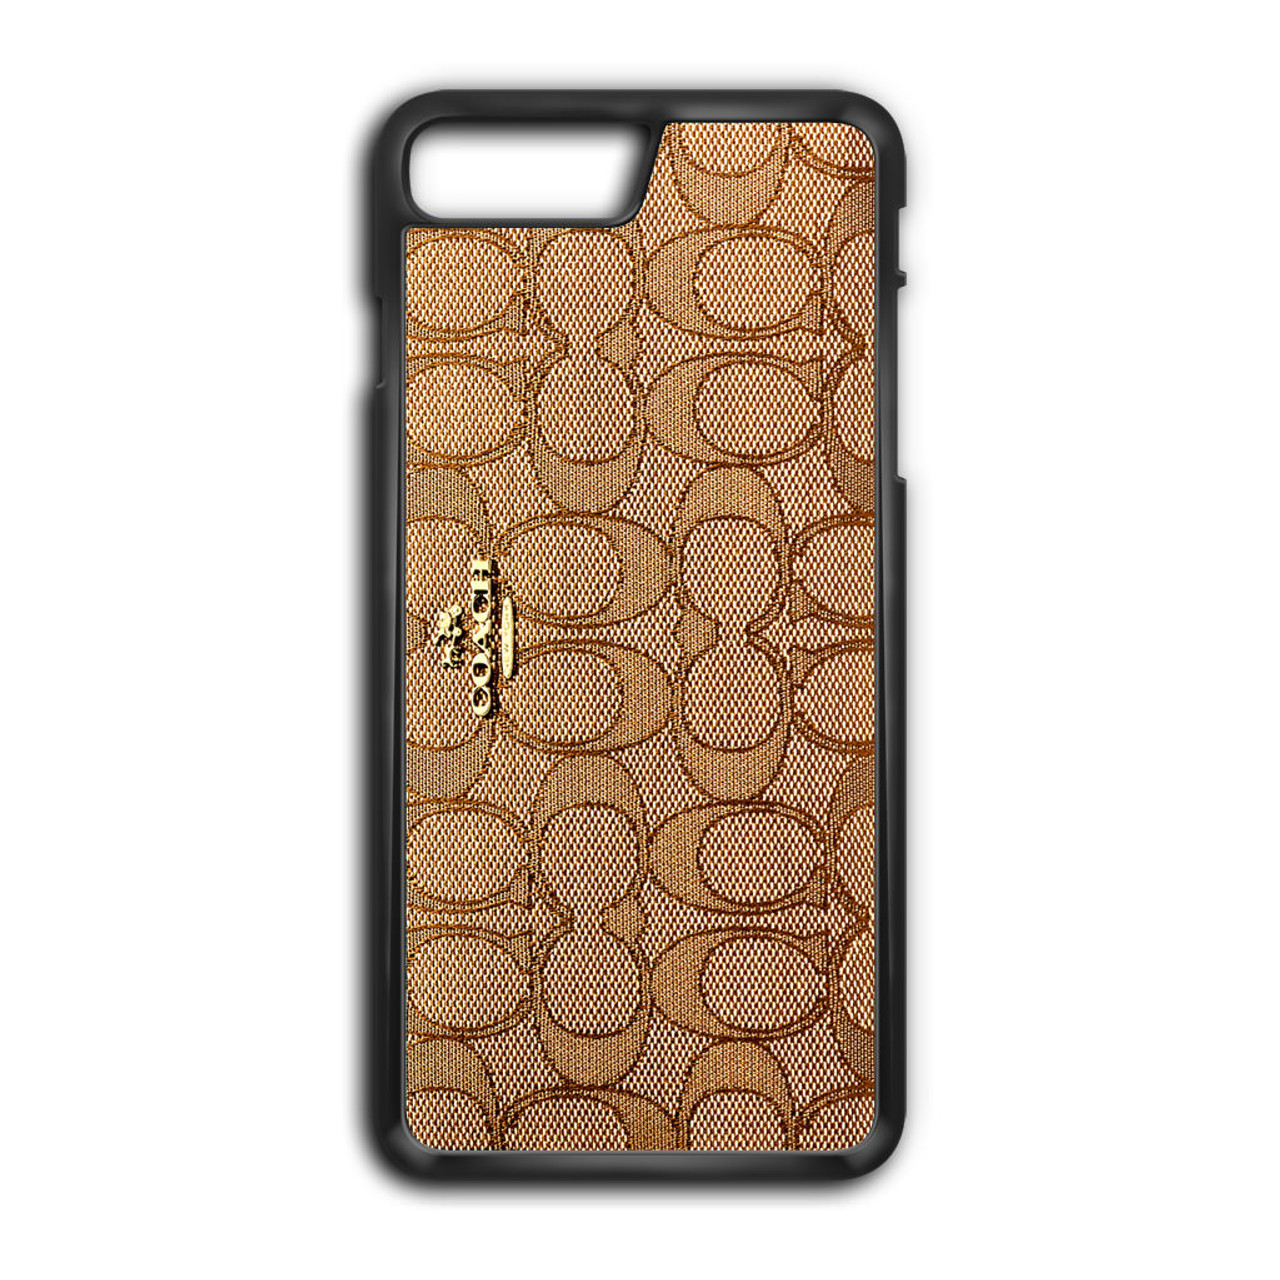 competitive price 2f4e6 f5793 Coach Wallet iPhone 7 Plus Case